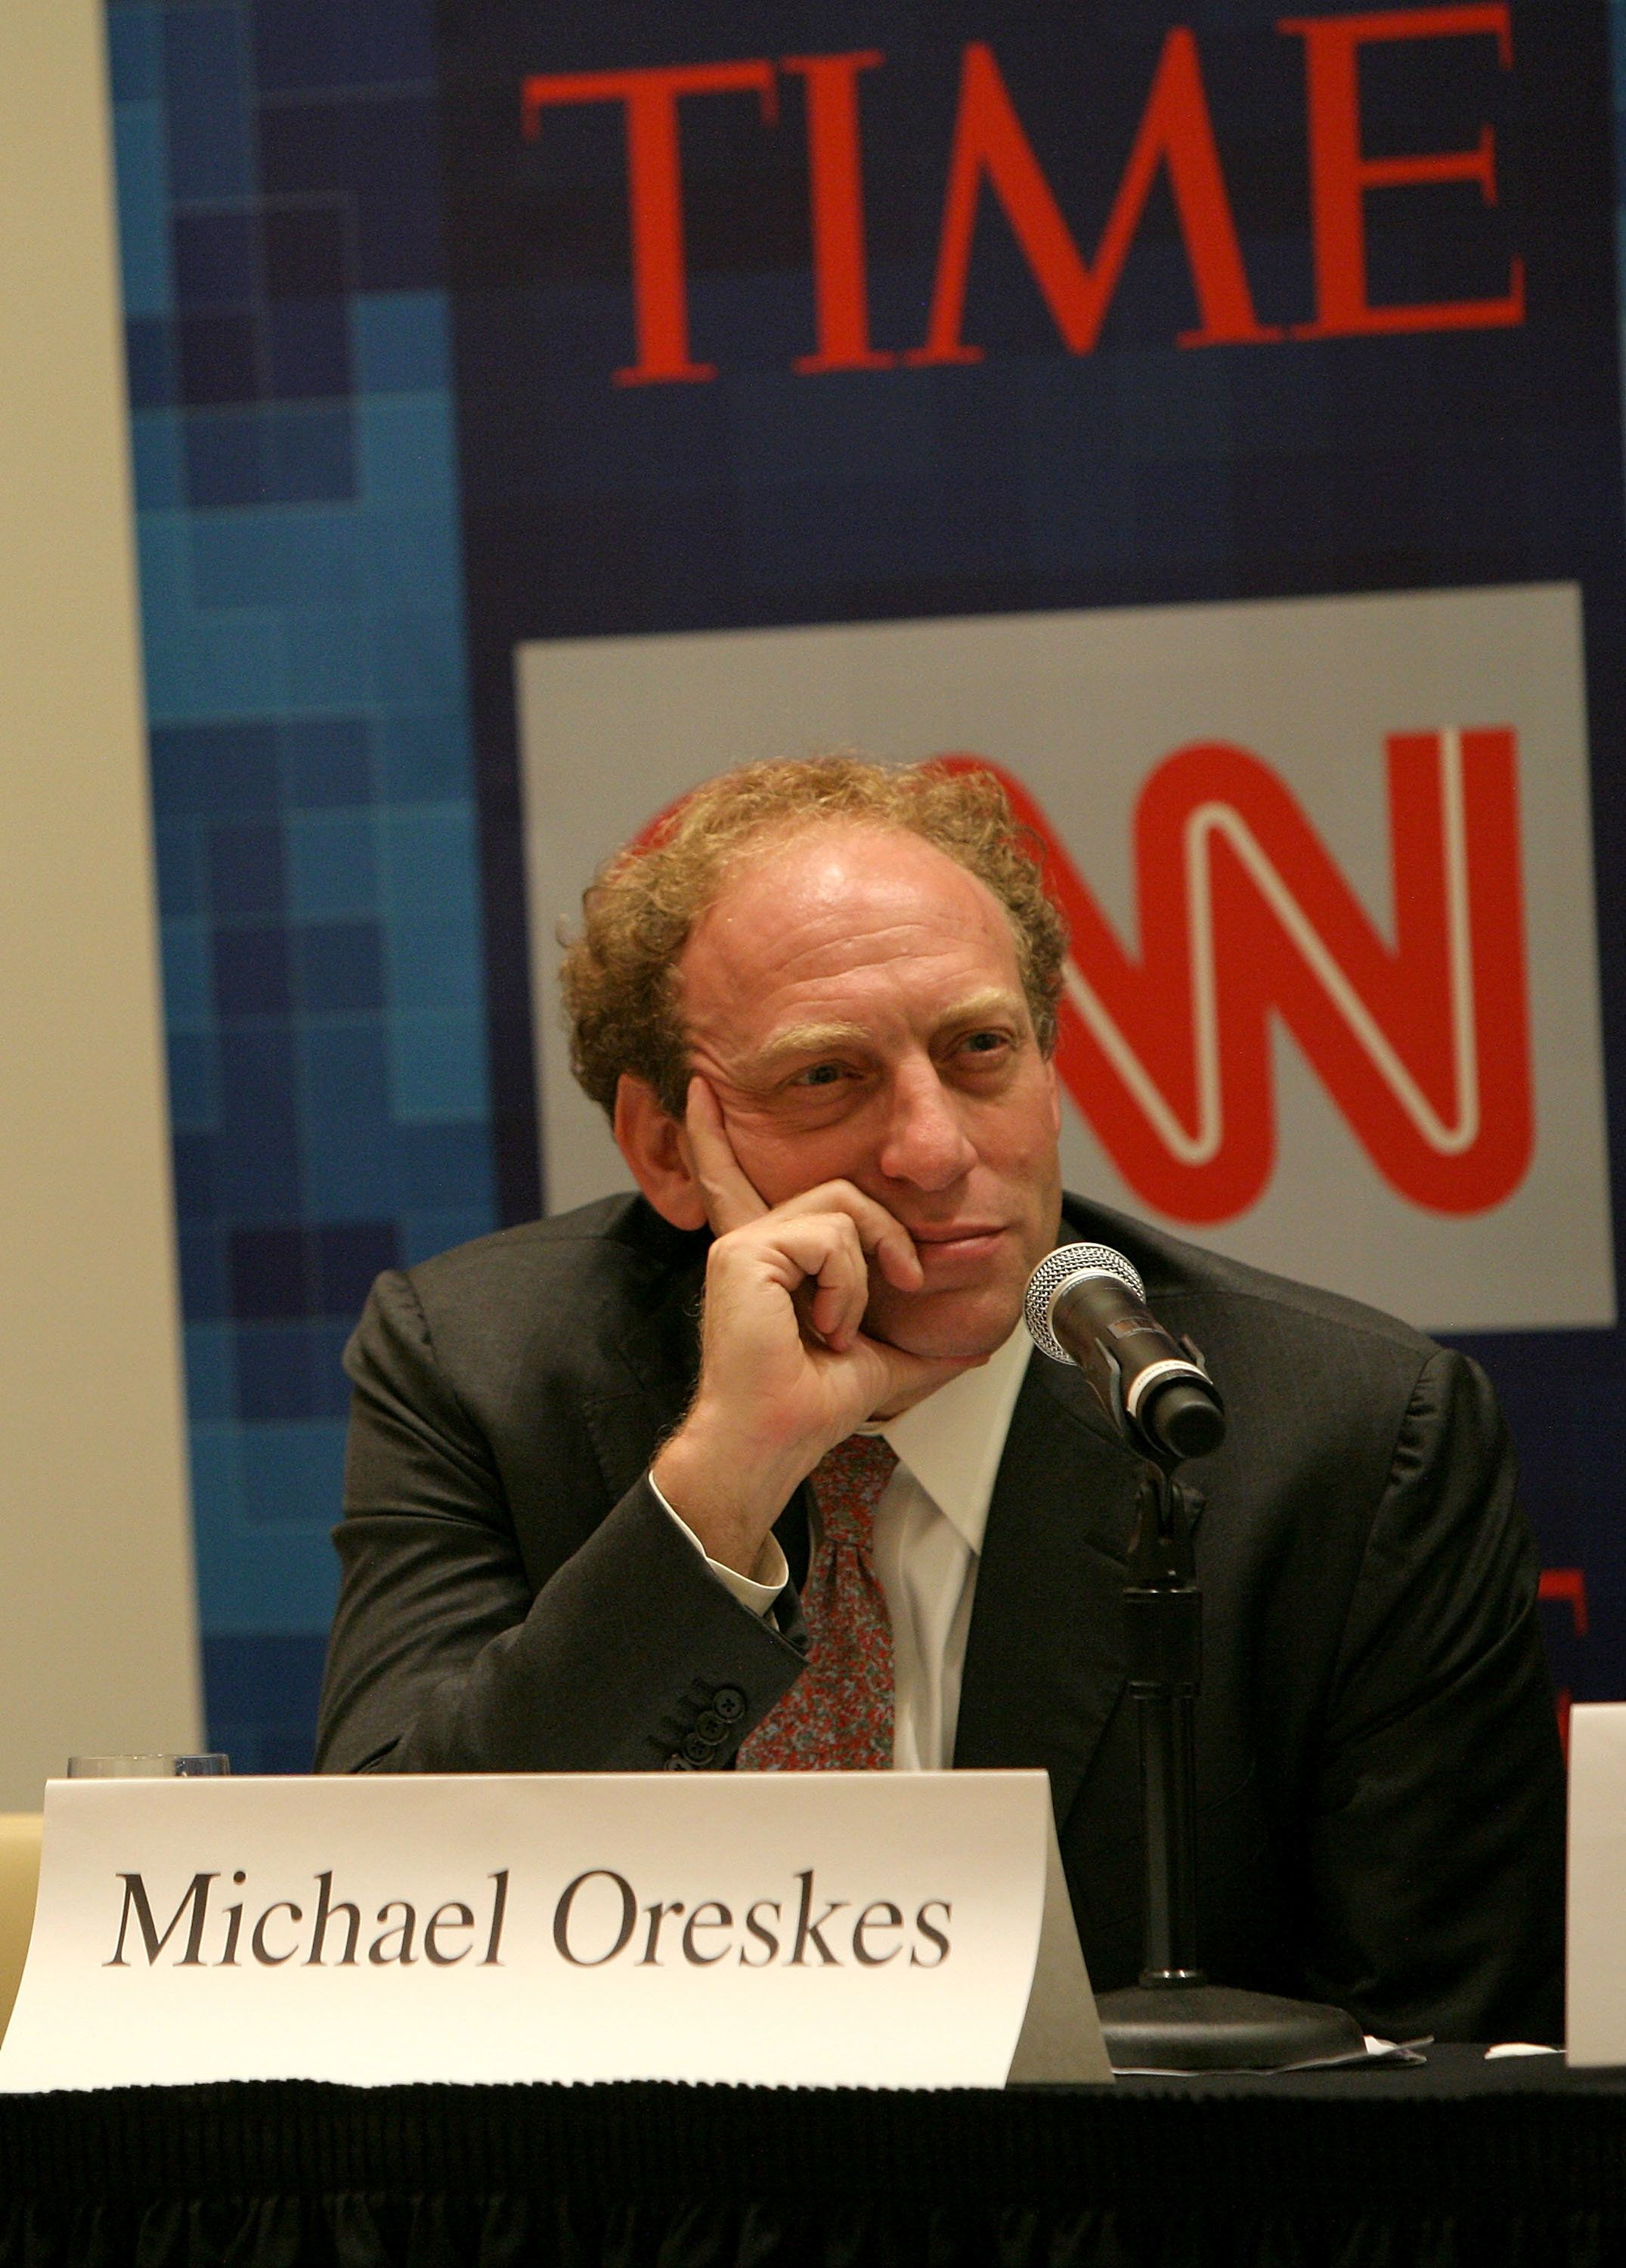 Michael Oreskes in 2008.